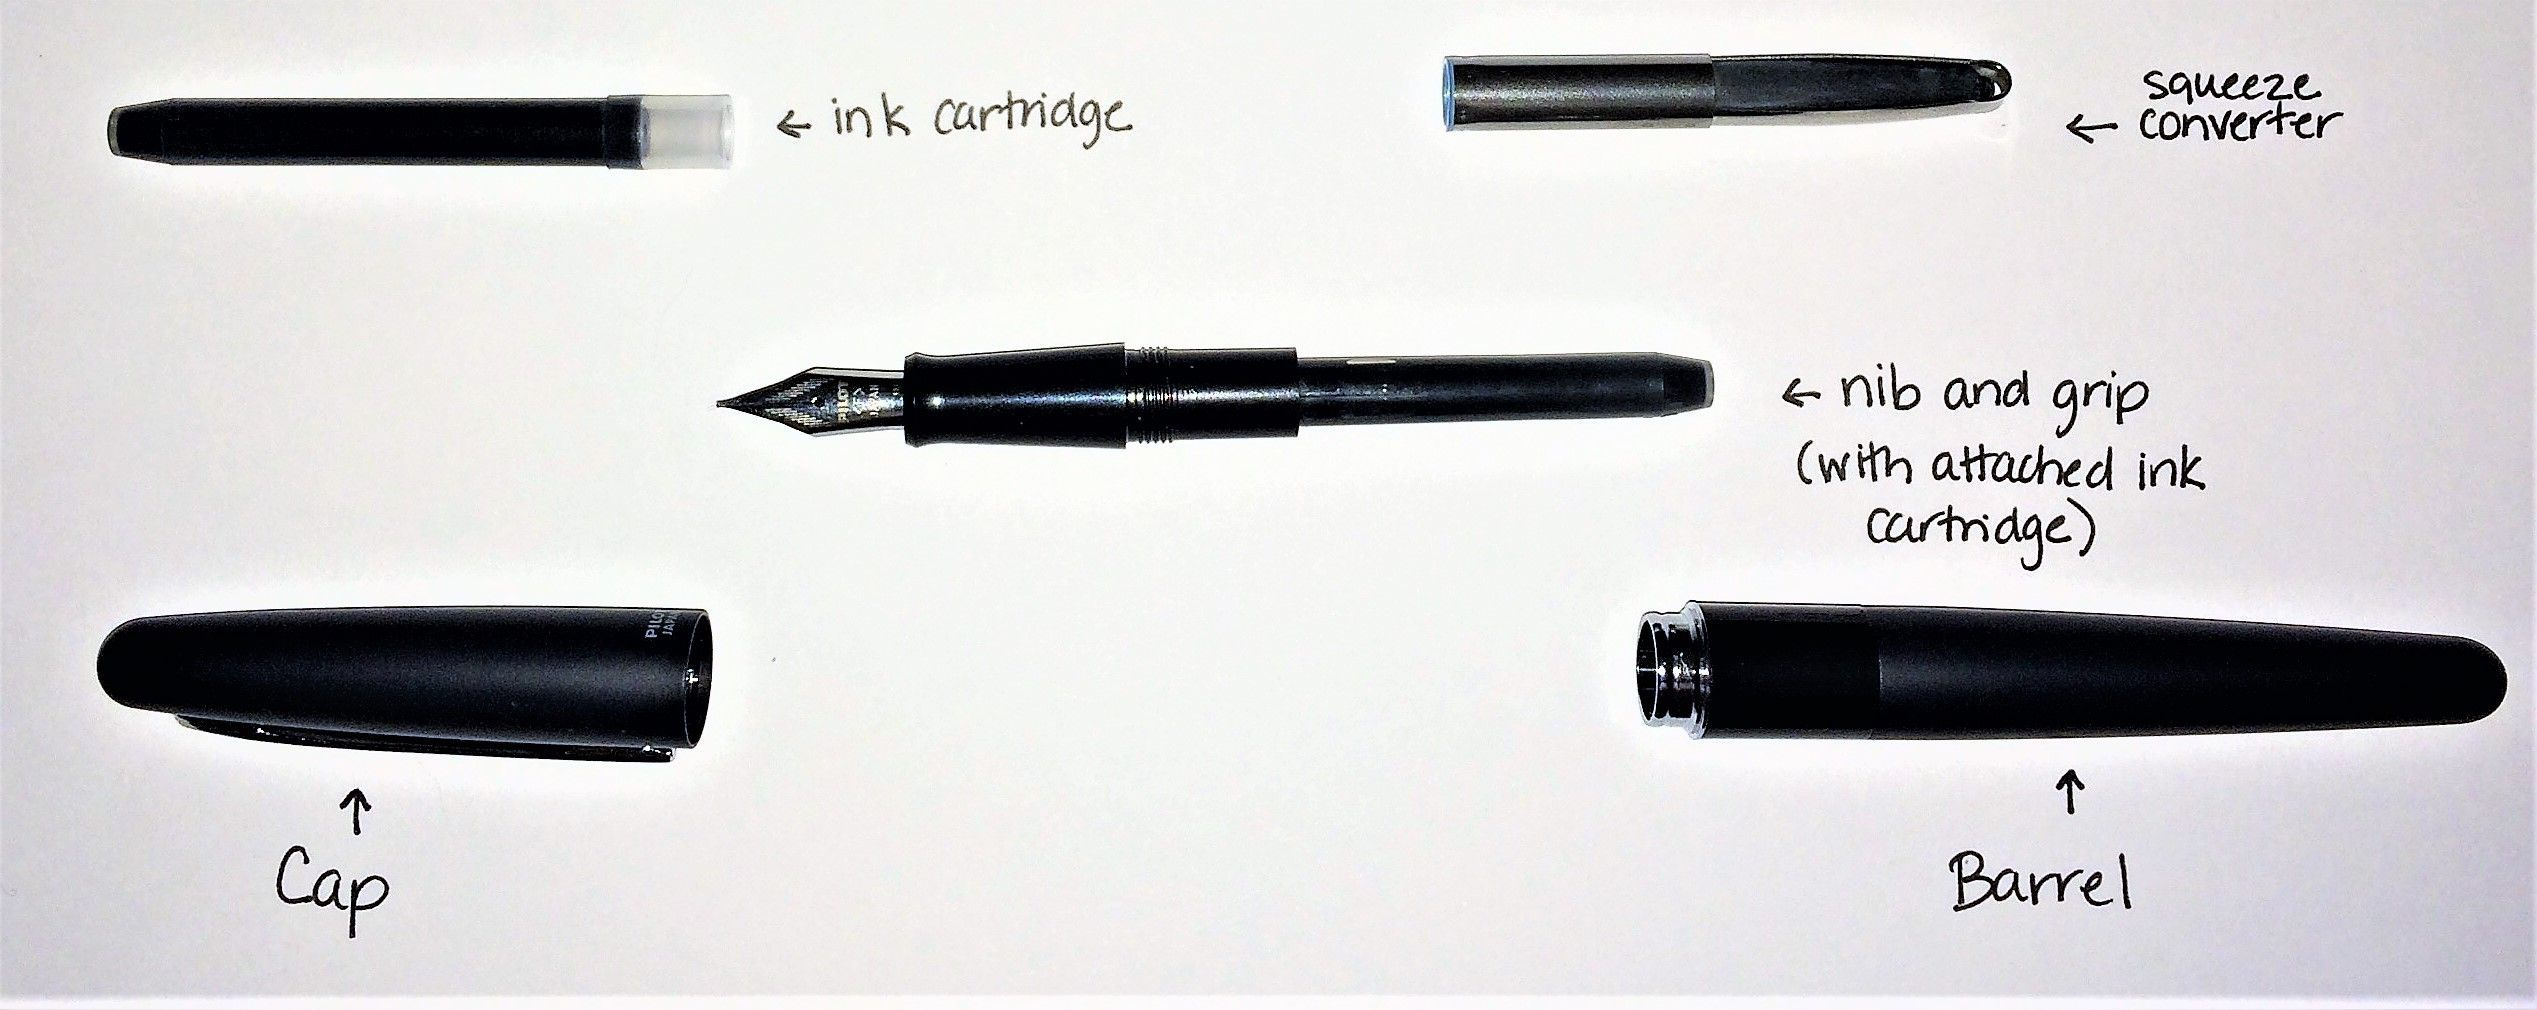 How to Put Ink in Fountain Pen Disassembled Pilot Metropolitan